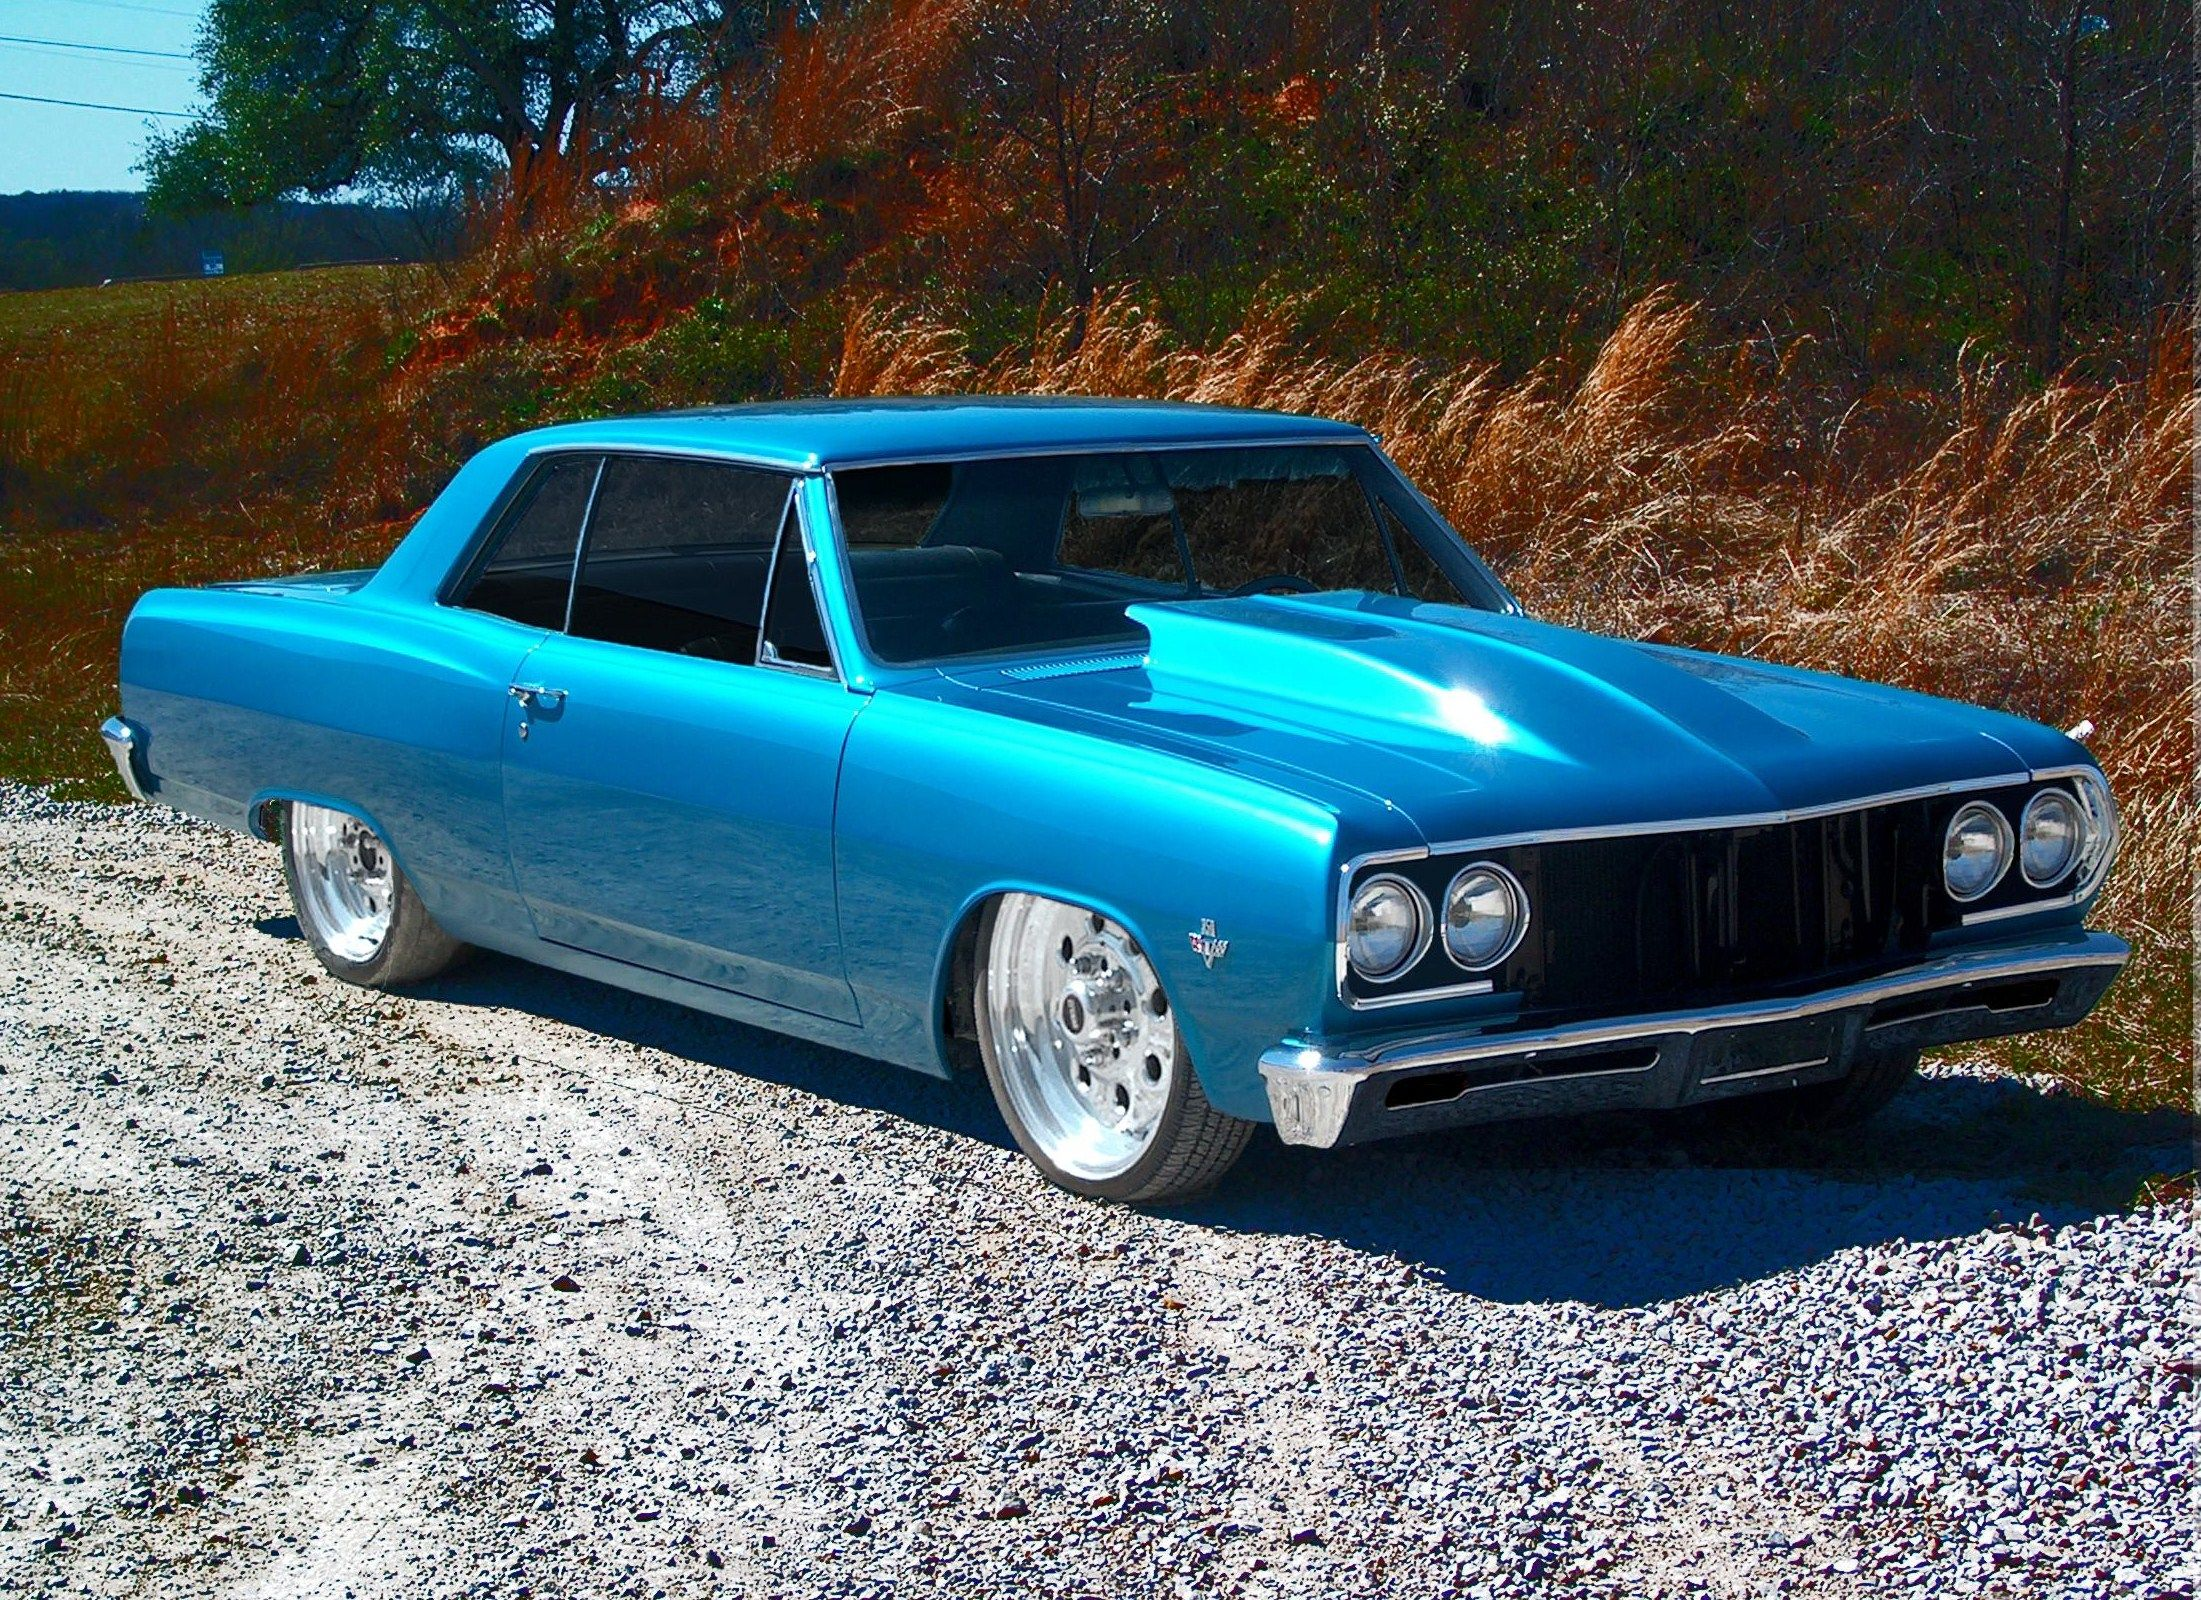 American Muscle Cars | AmericanMuscle, american muscle, car ...